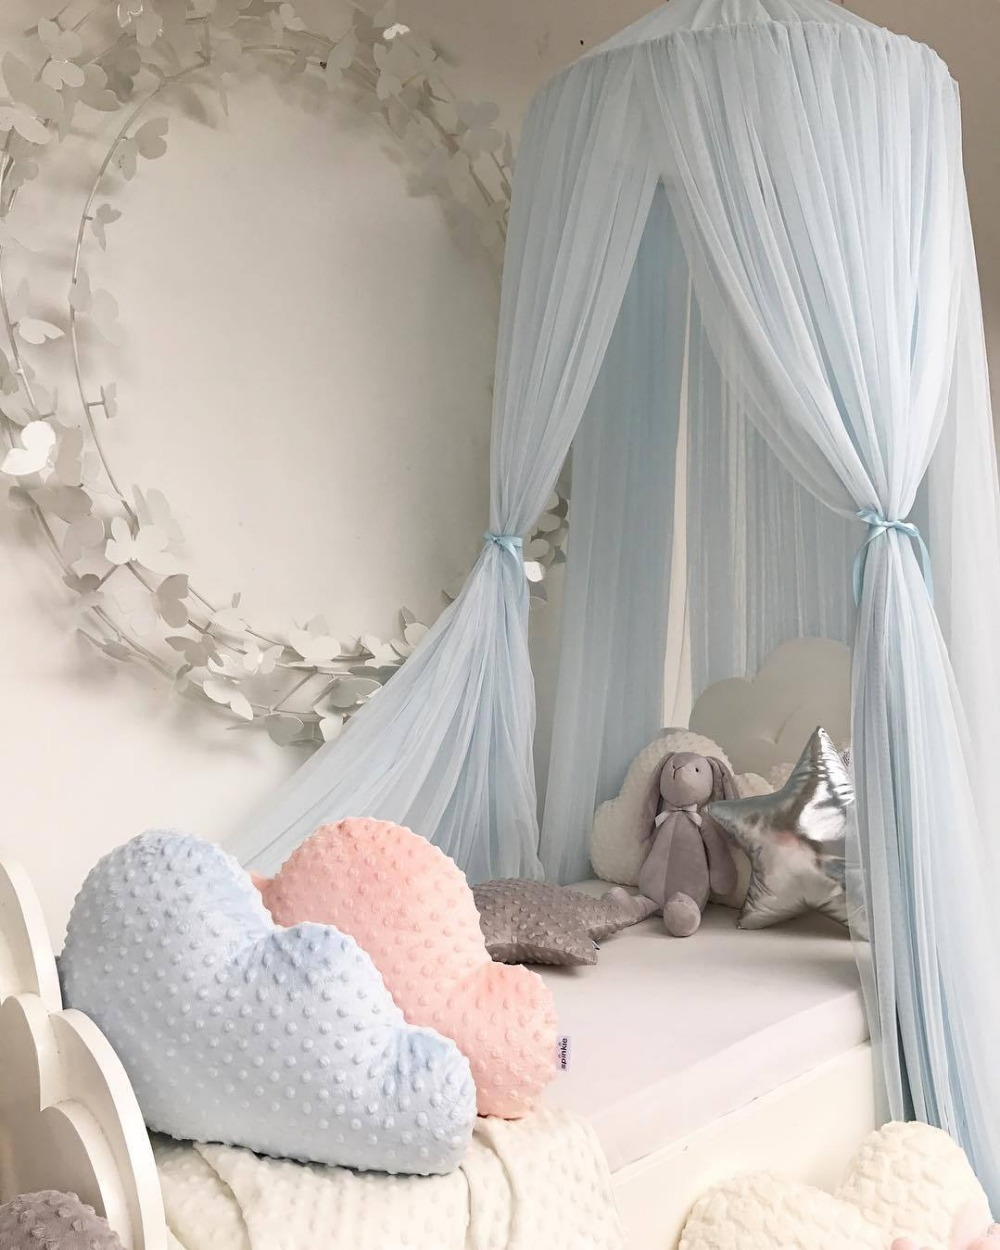 Luxury Kids Baby Bedding Round Dome Bed Cotton Canopy Netting Bedcover Mosquito Net Curtain Play Tent For Children <br>